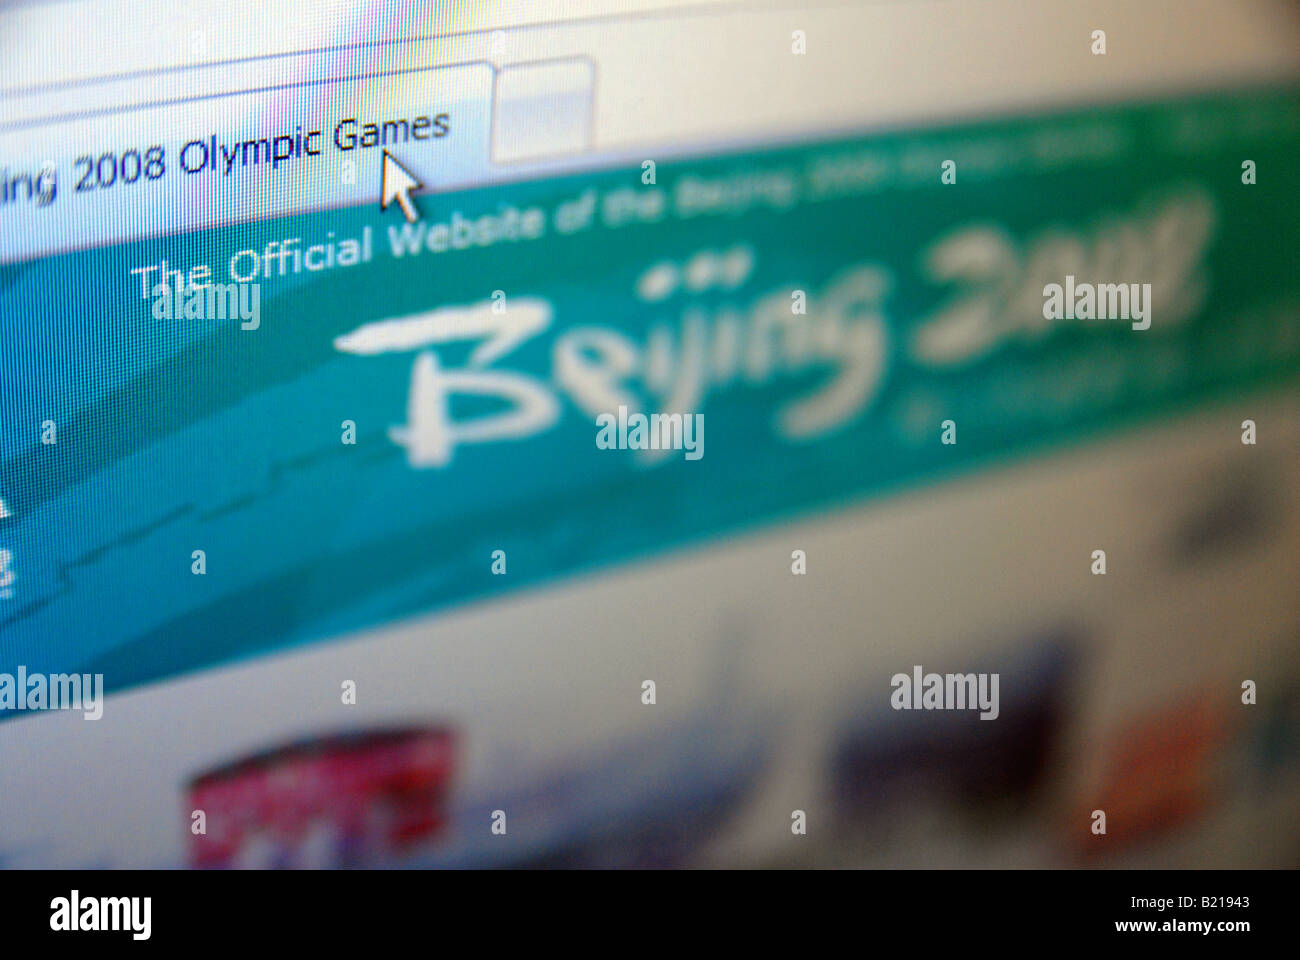 12b424ed72e3 Beijing 2008 olympic games web site Stock Photo  18468803 - Alamy